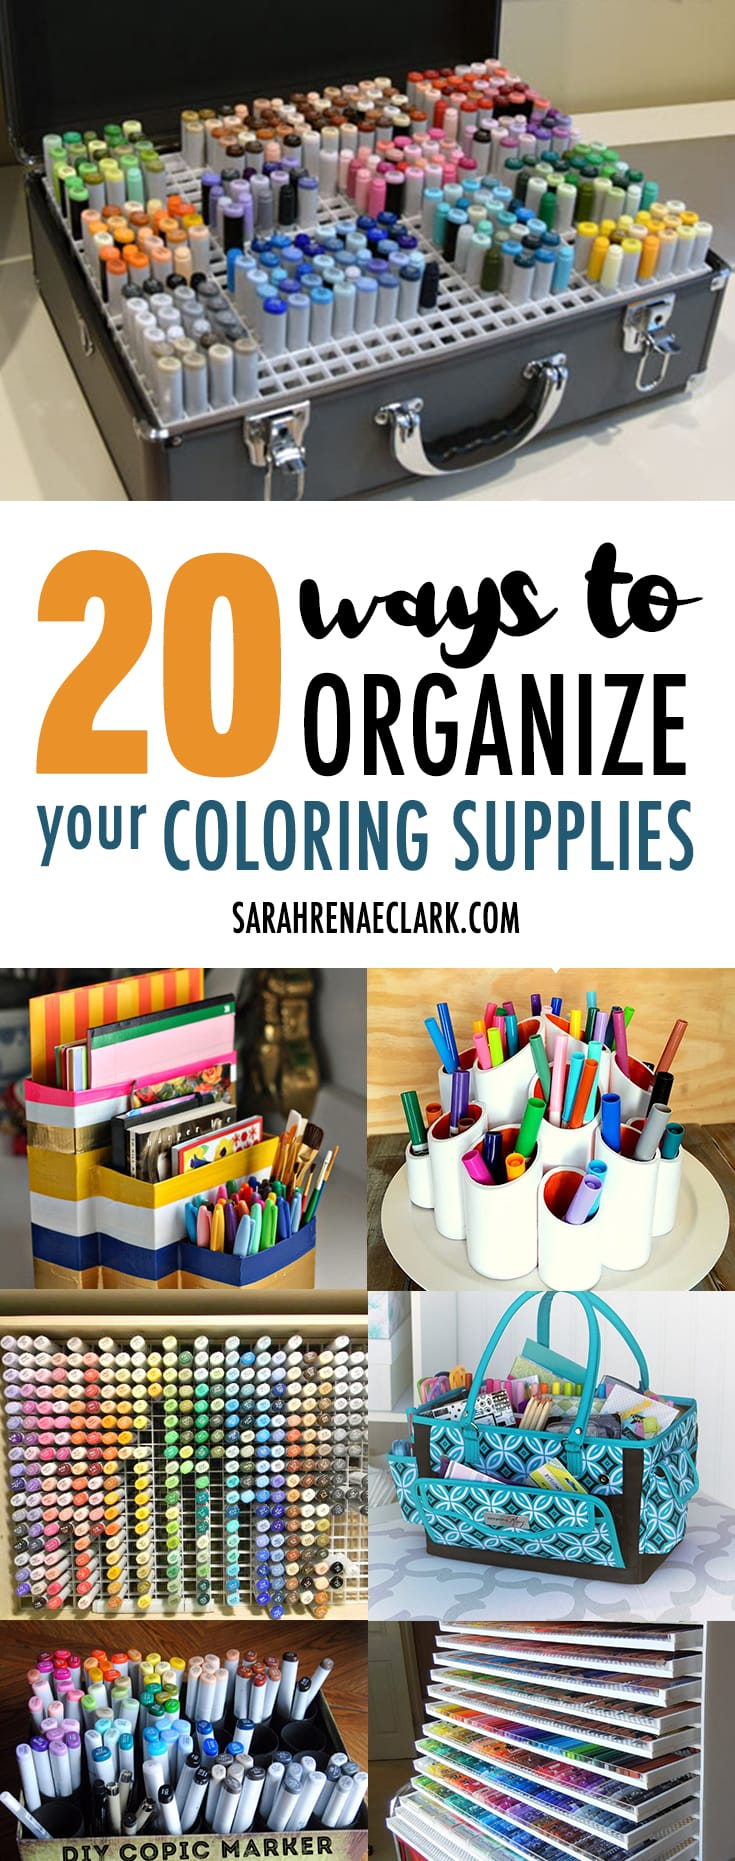 20 Clever Ways to Organize Your Coloring Supplies